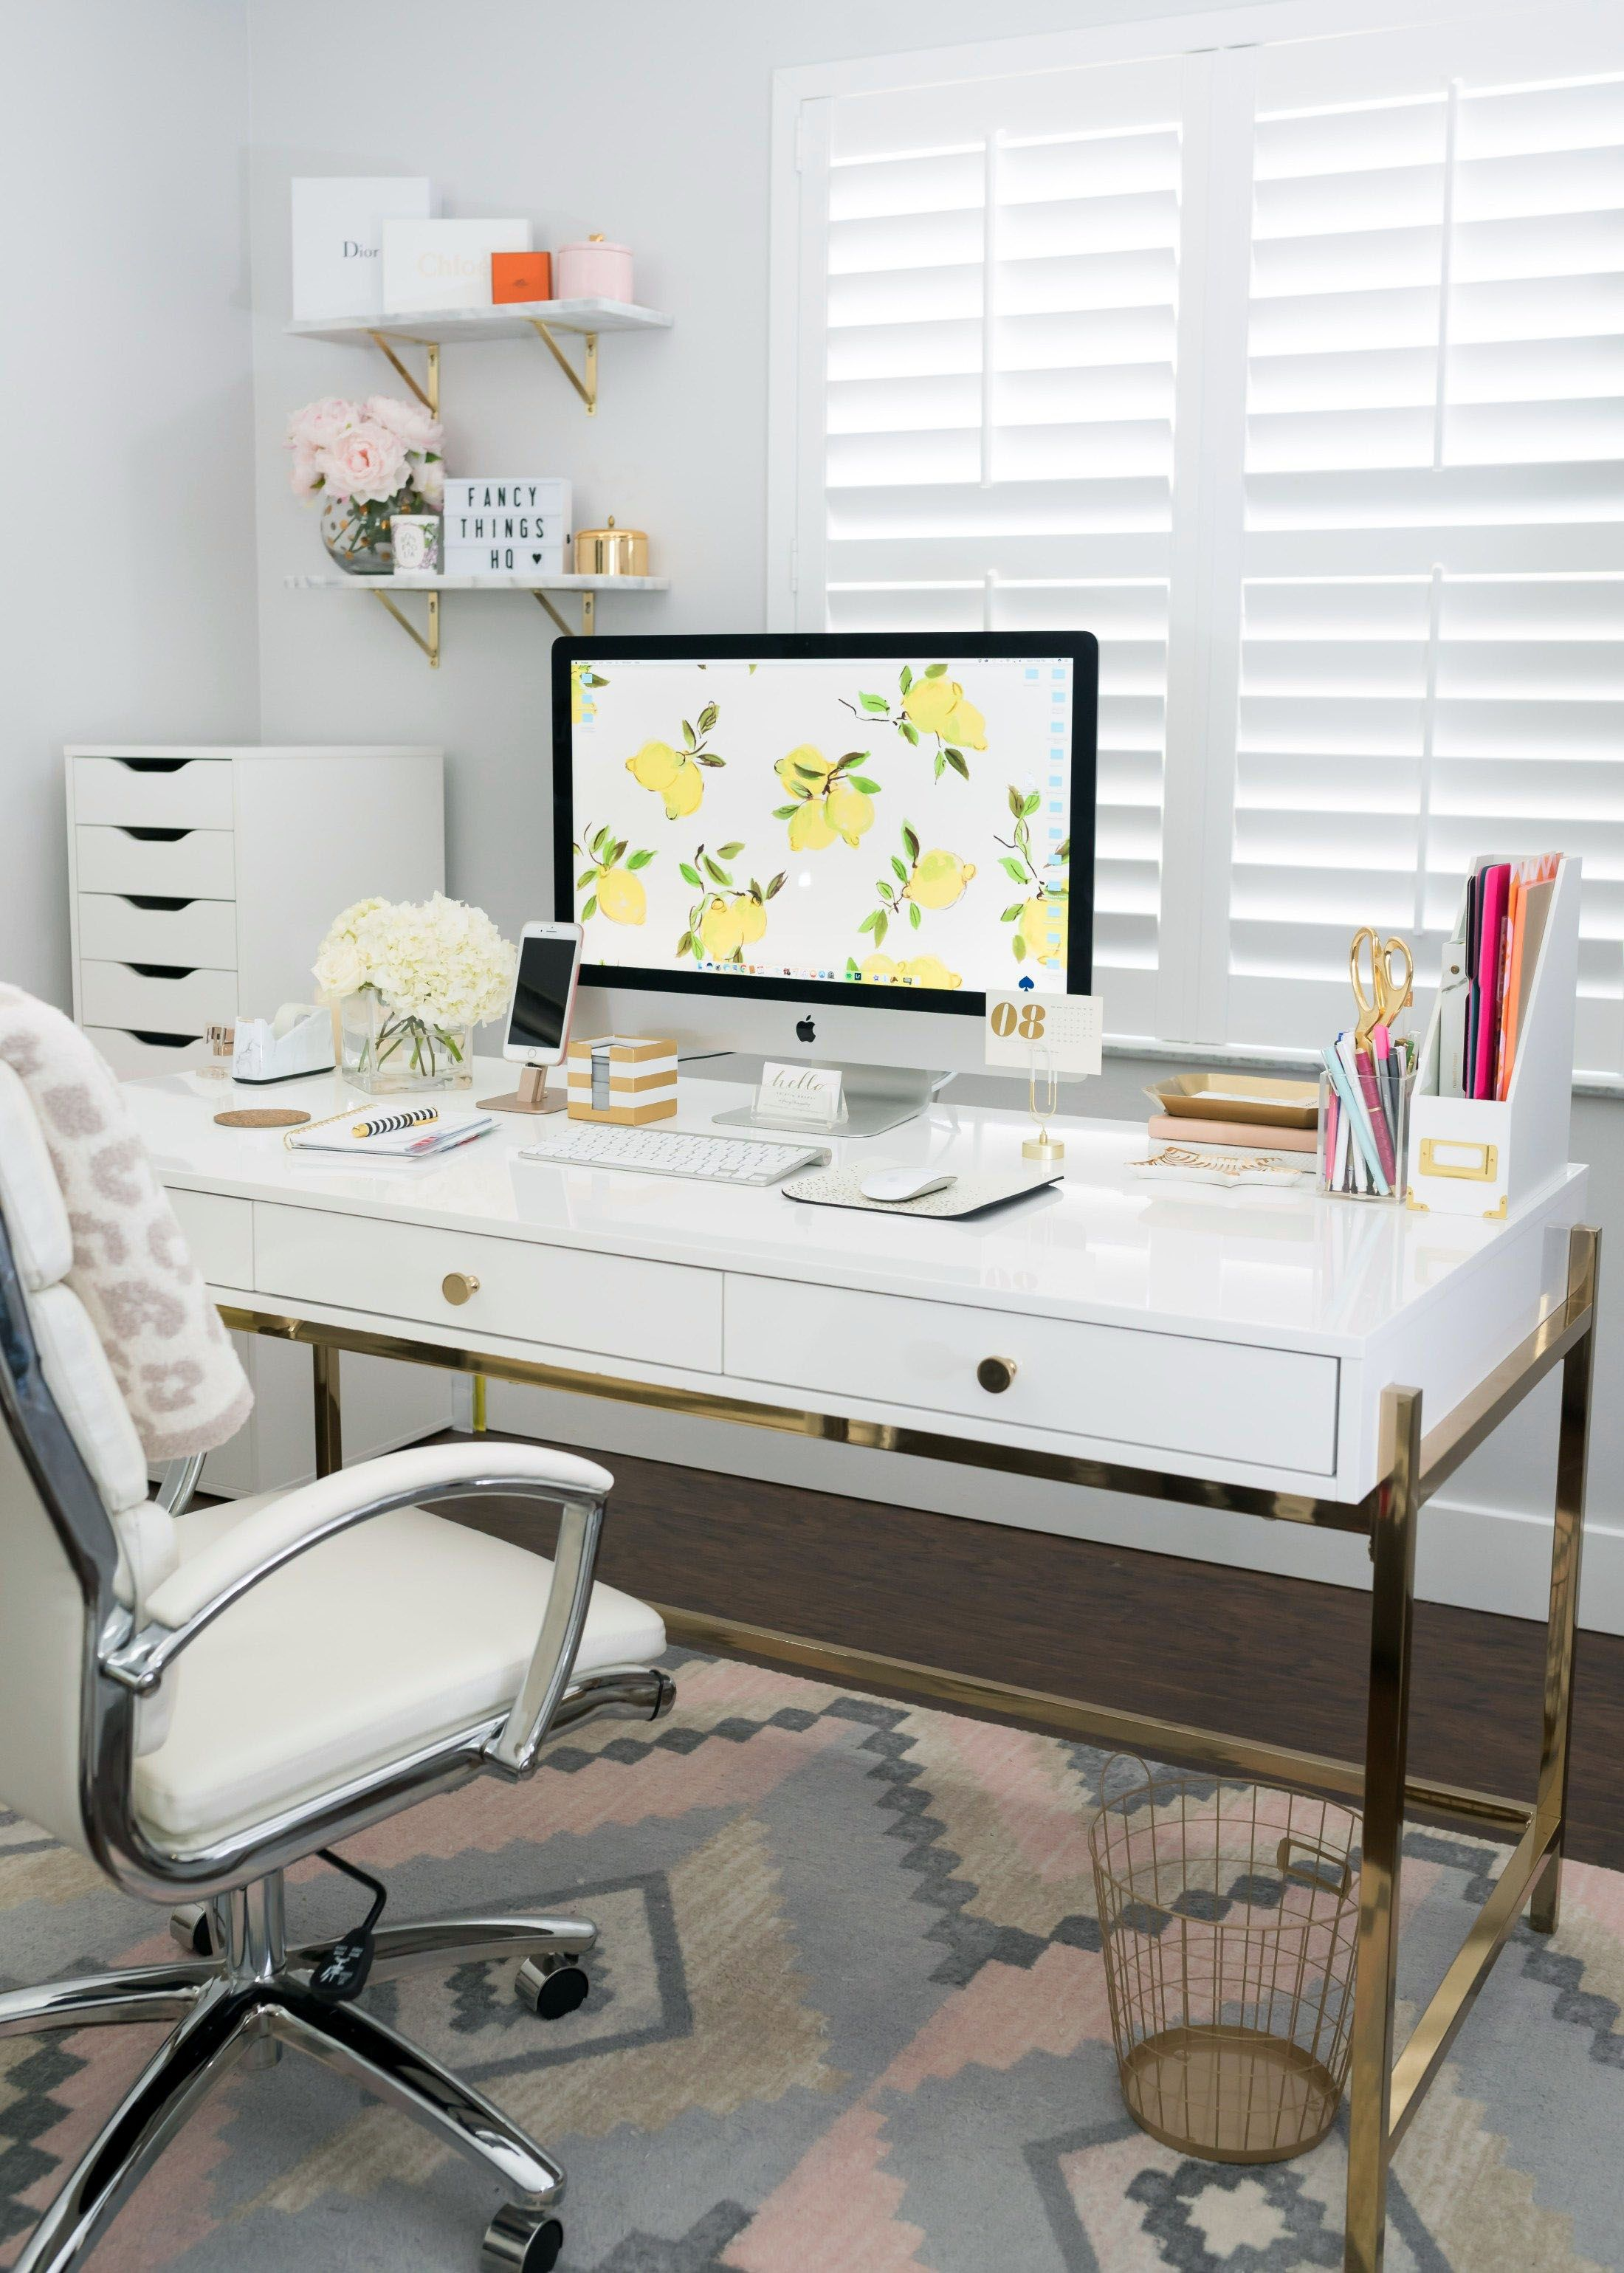 Ways To Decorate A Home Office Desk And Chair Set Only In Miral Iva Design Home Office Decor Home Office Space Home